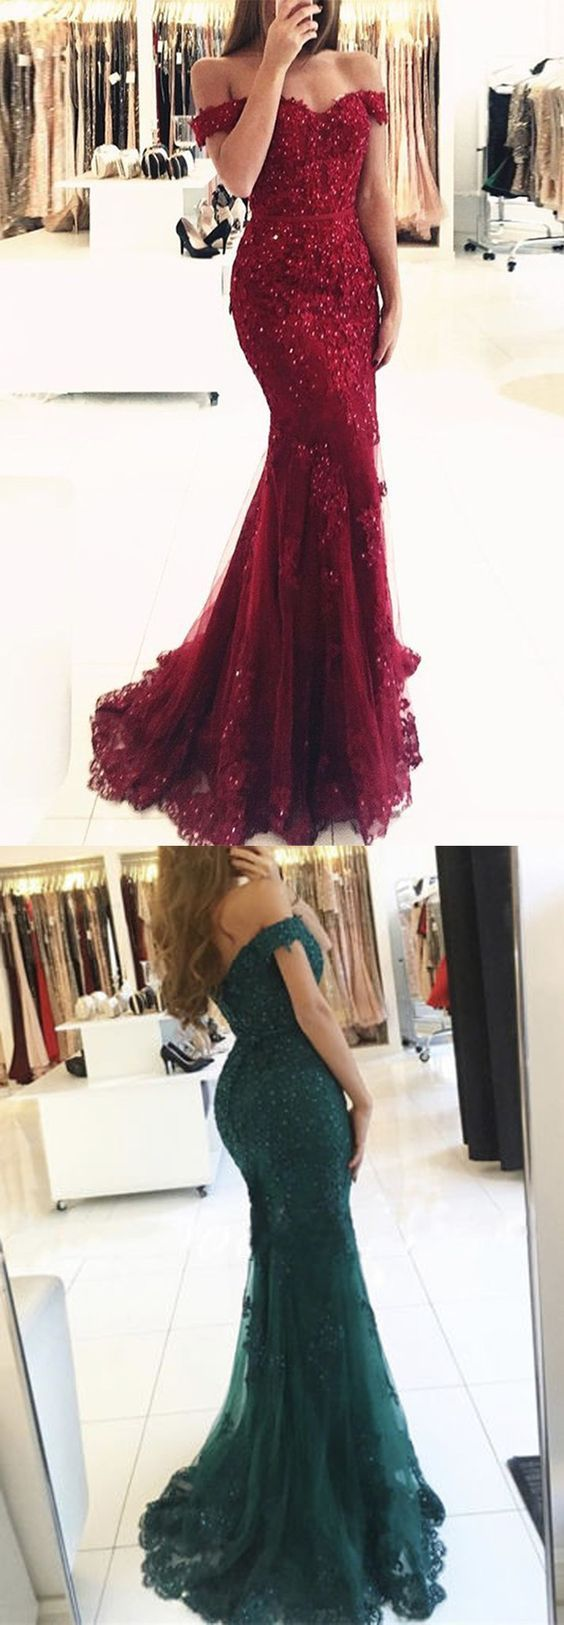 Off shoulder dark red lace beaded evening mermaid prom dresses long